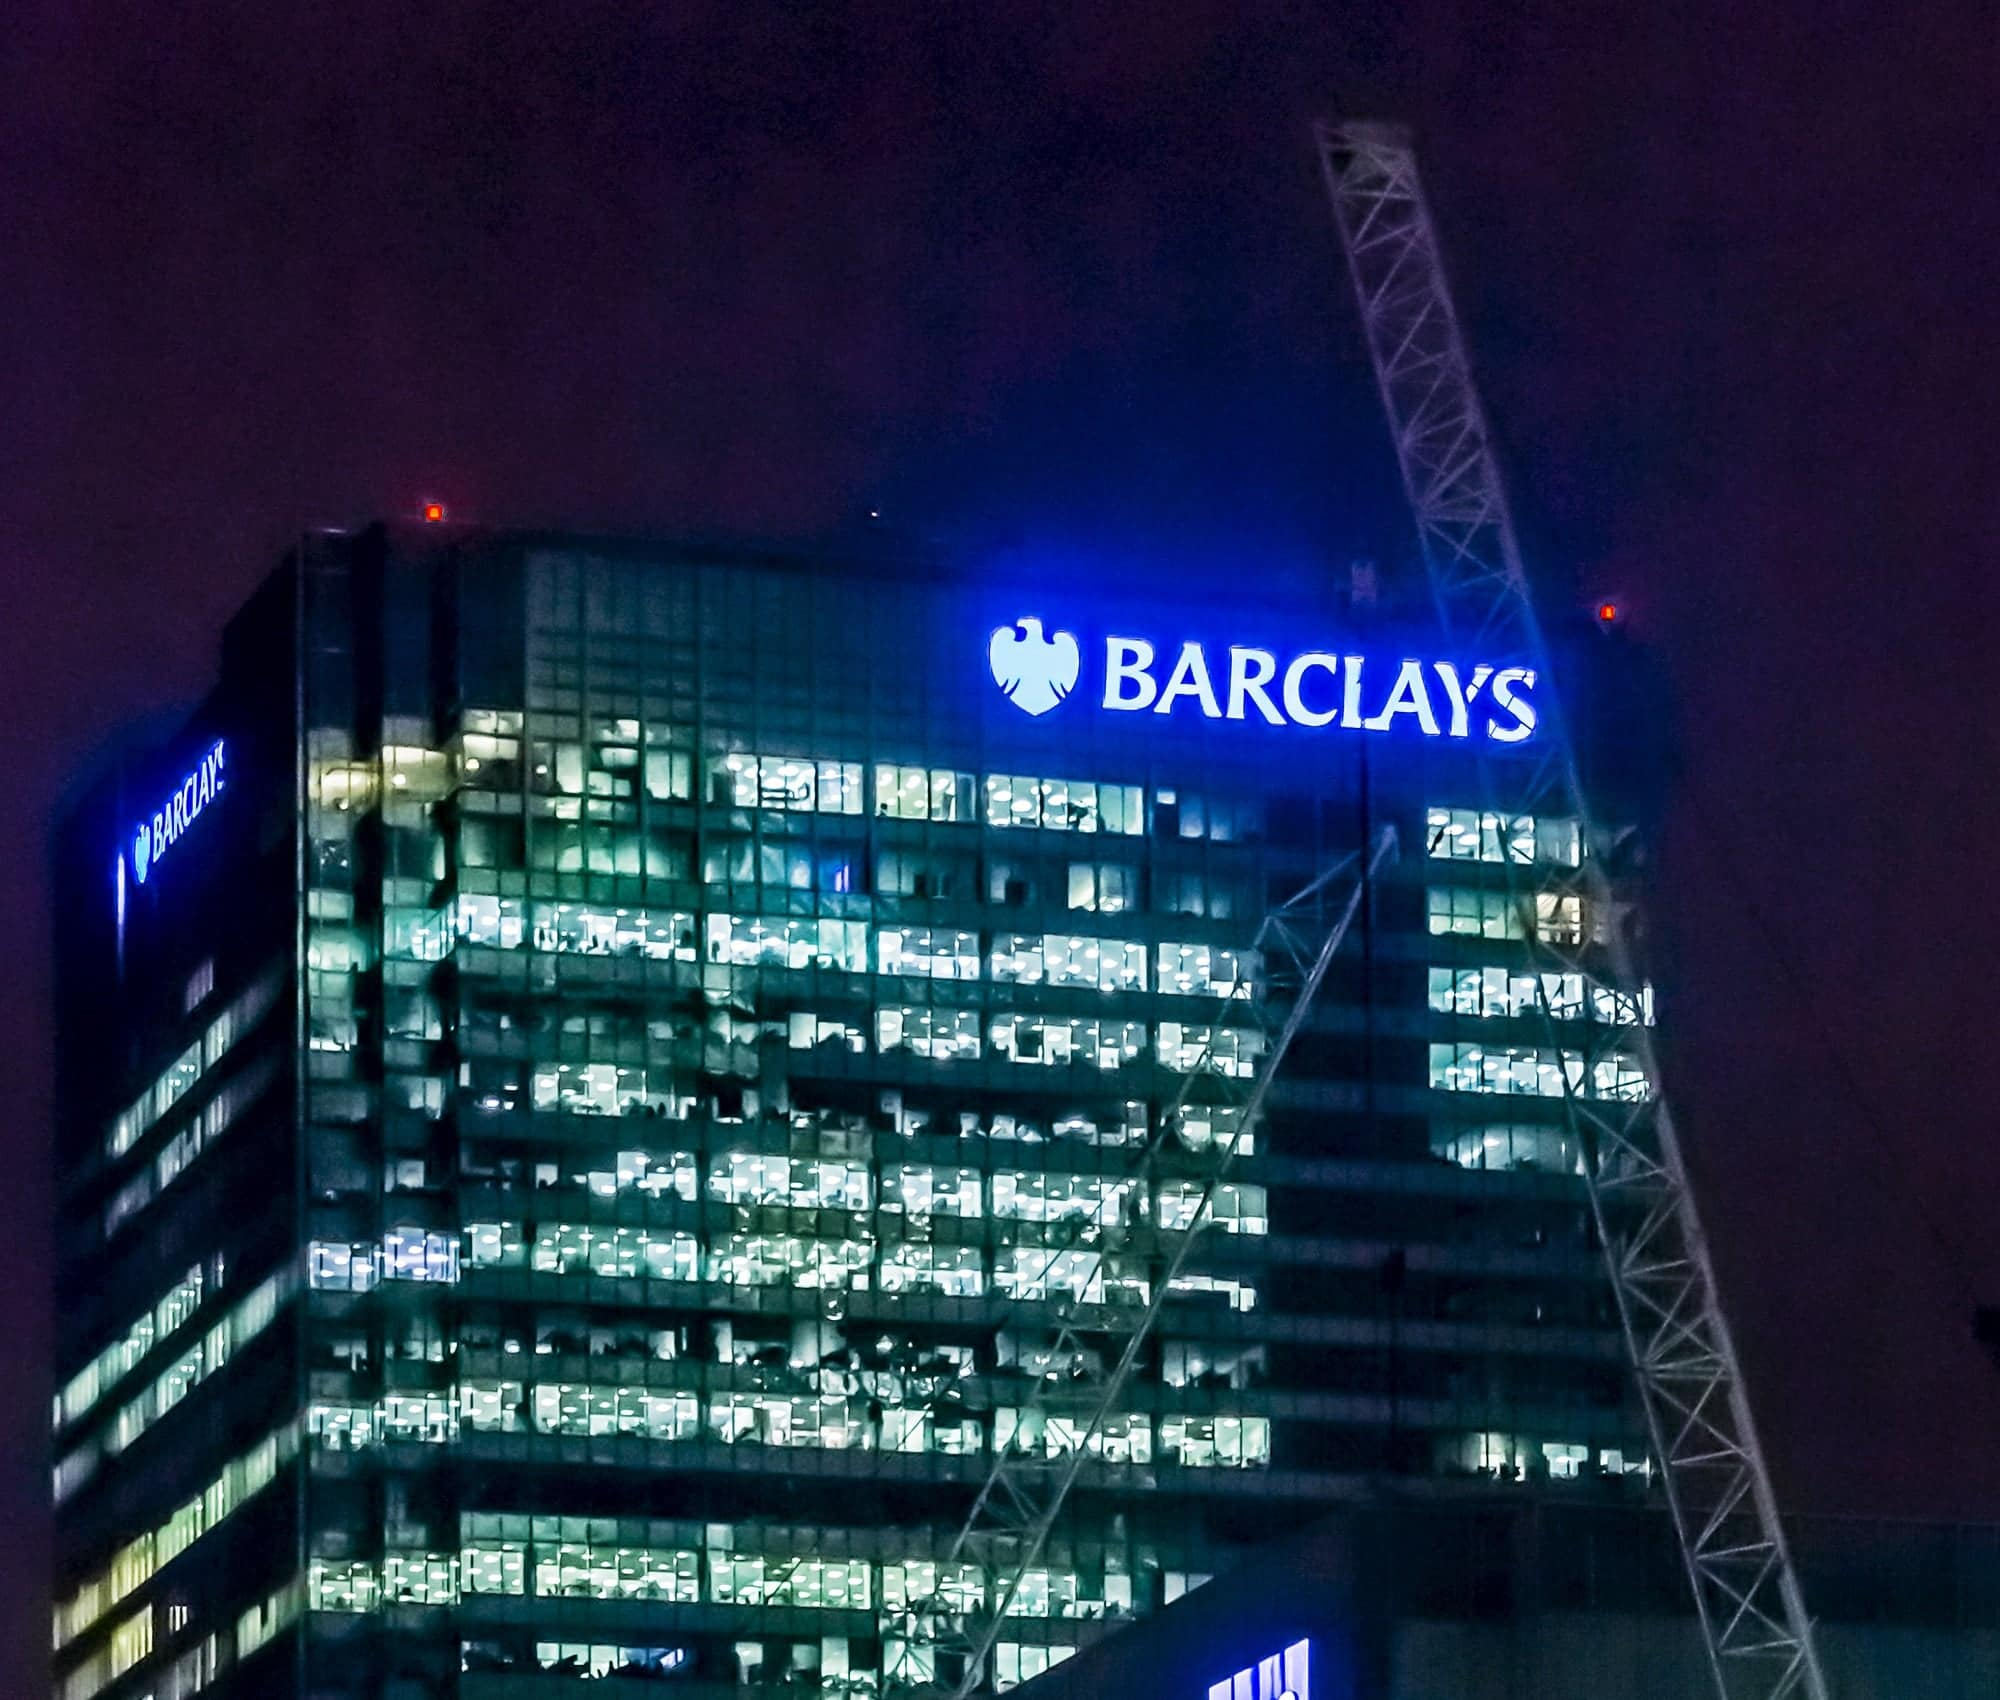 barclays bank london lexlaw litigation solicitor bank misselling claims litigation lawyers barristers libor professional negligence